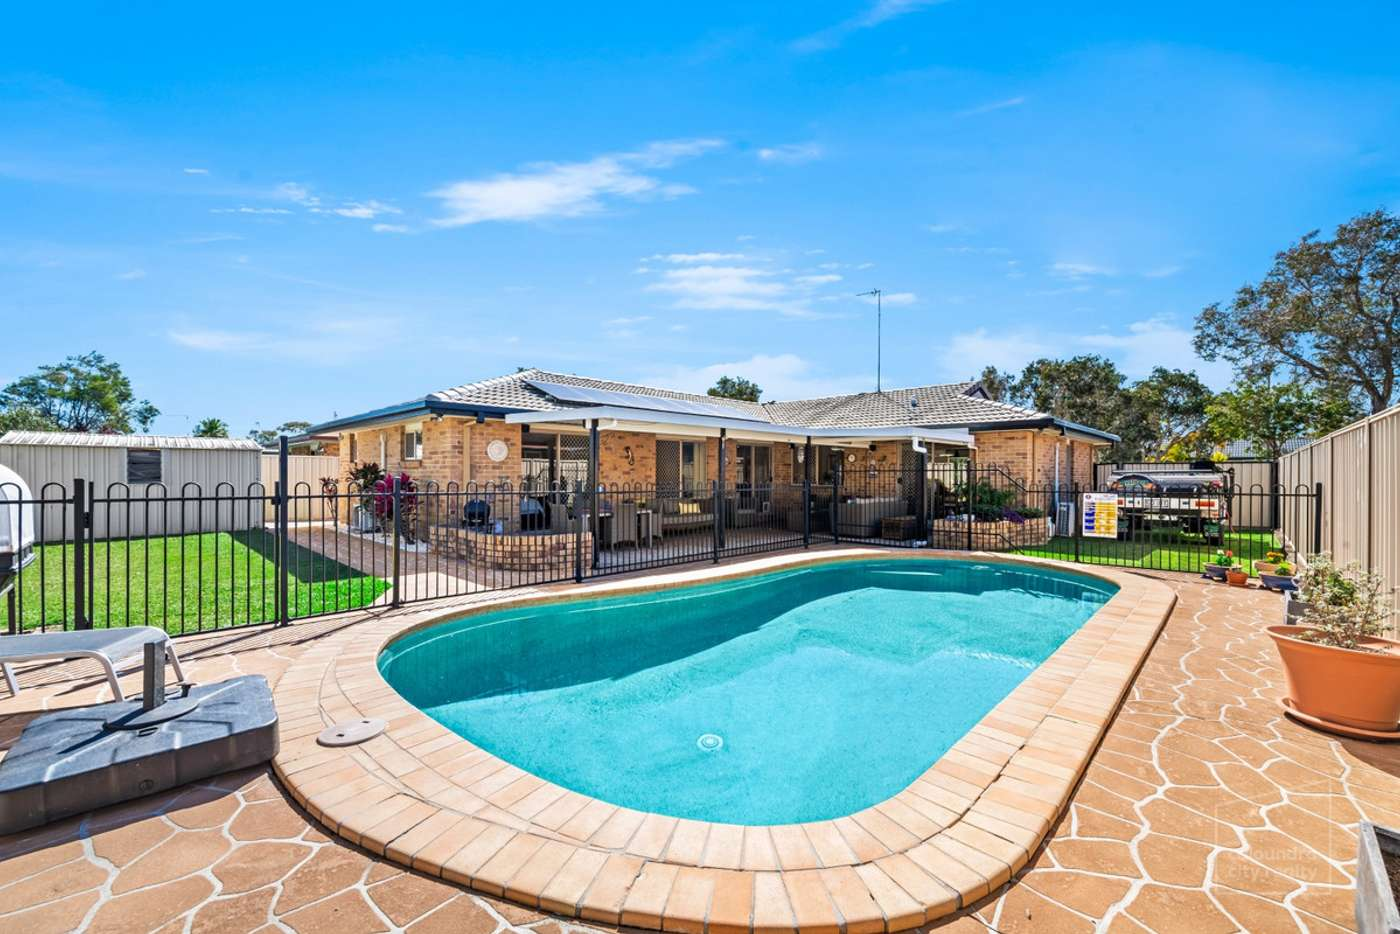 Main view of Homely house listing, 4 Marigold Court, Currimundi QLD 4551